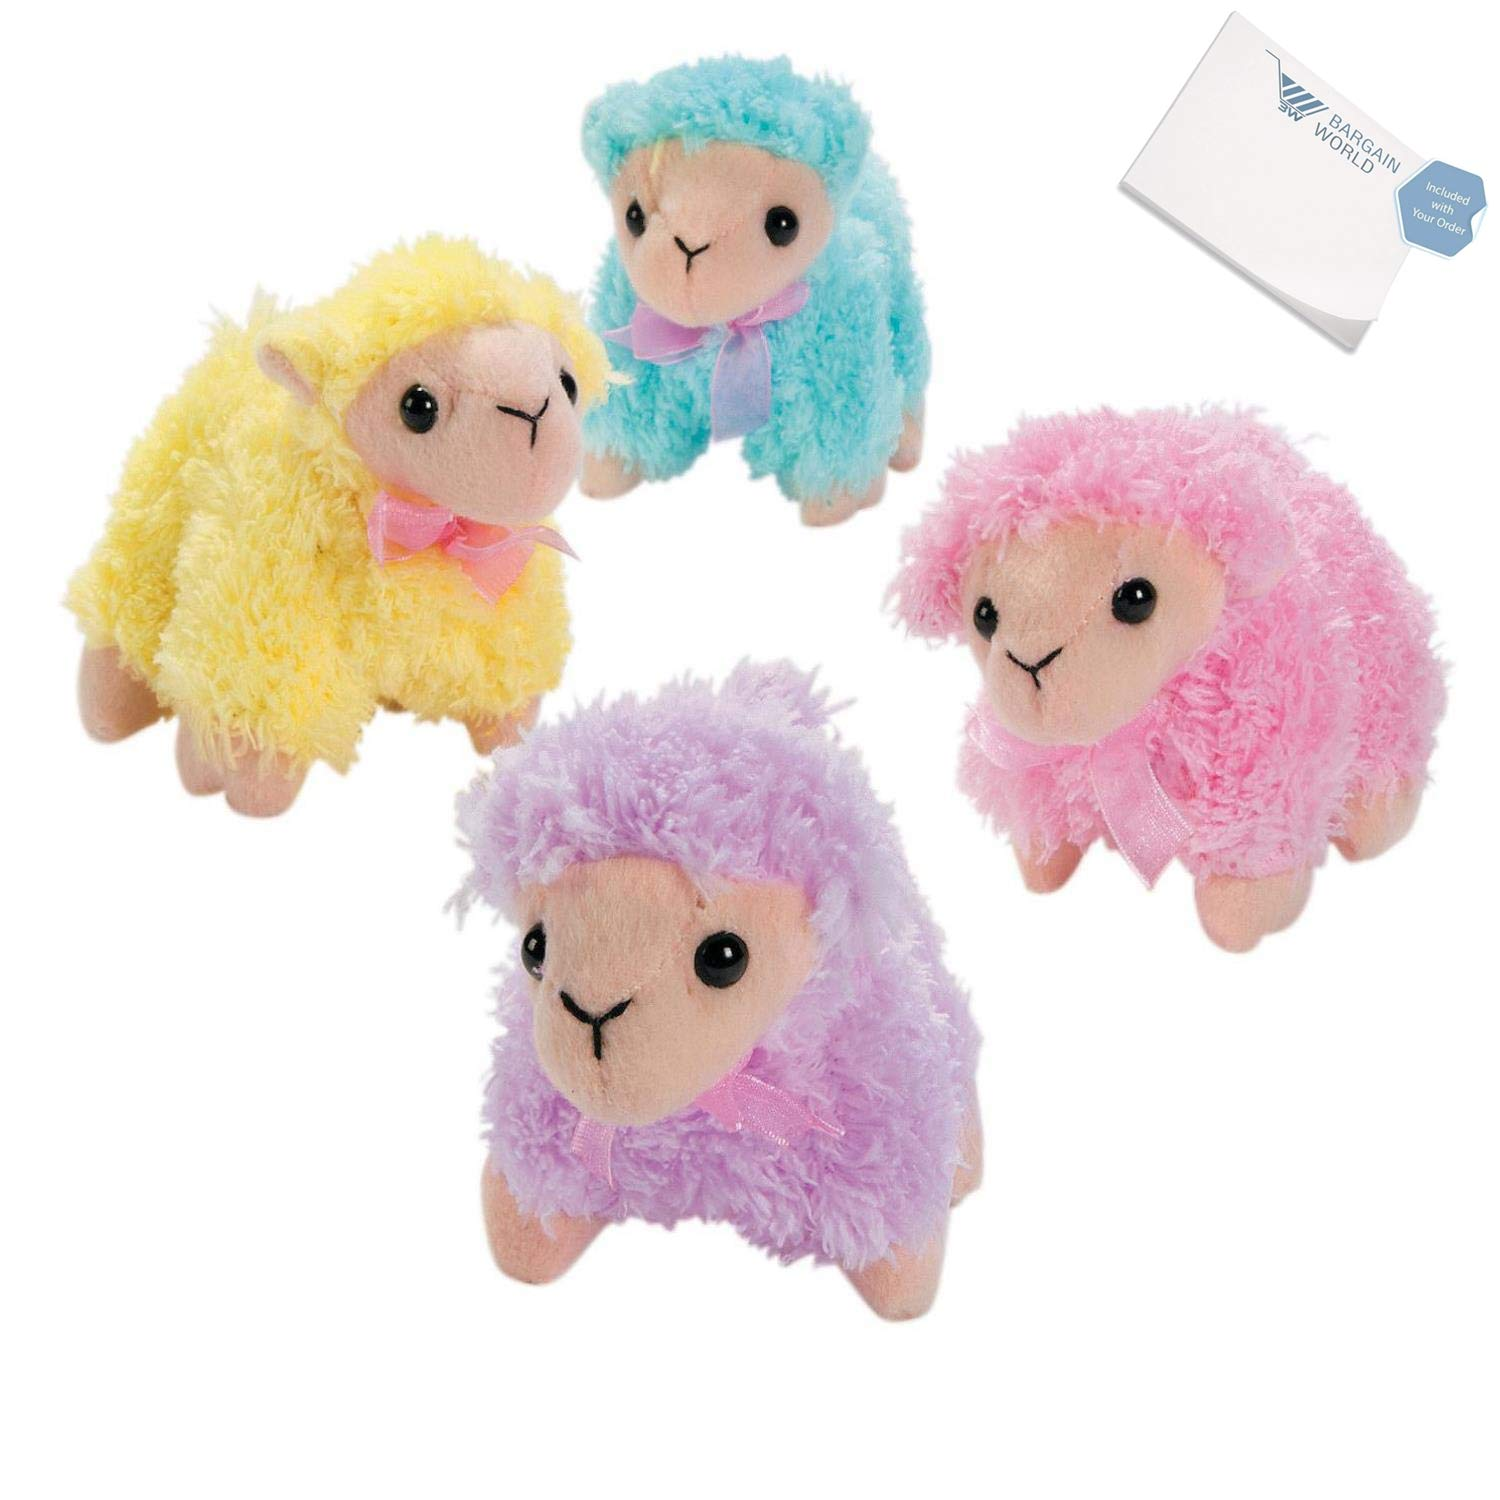 Bargain World Soft Pastel Stuffed Lambs (With Sticky Notes)